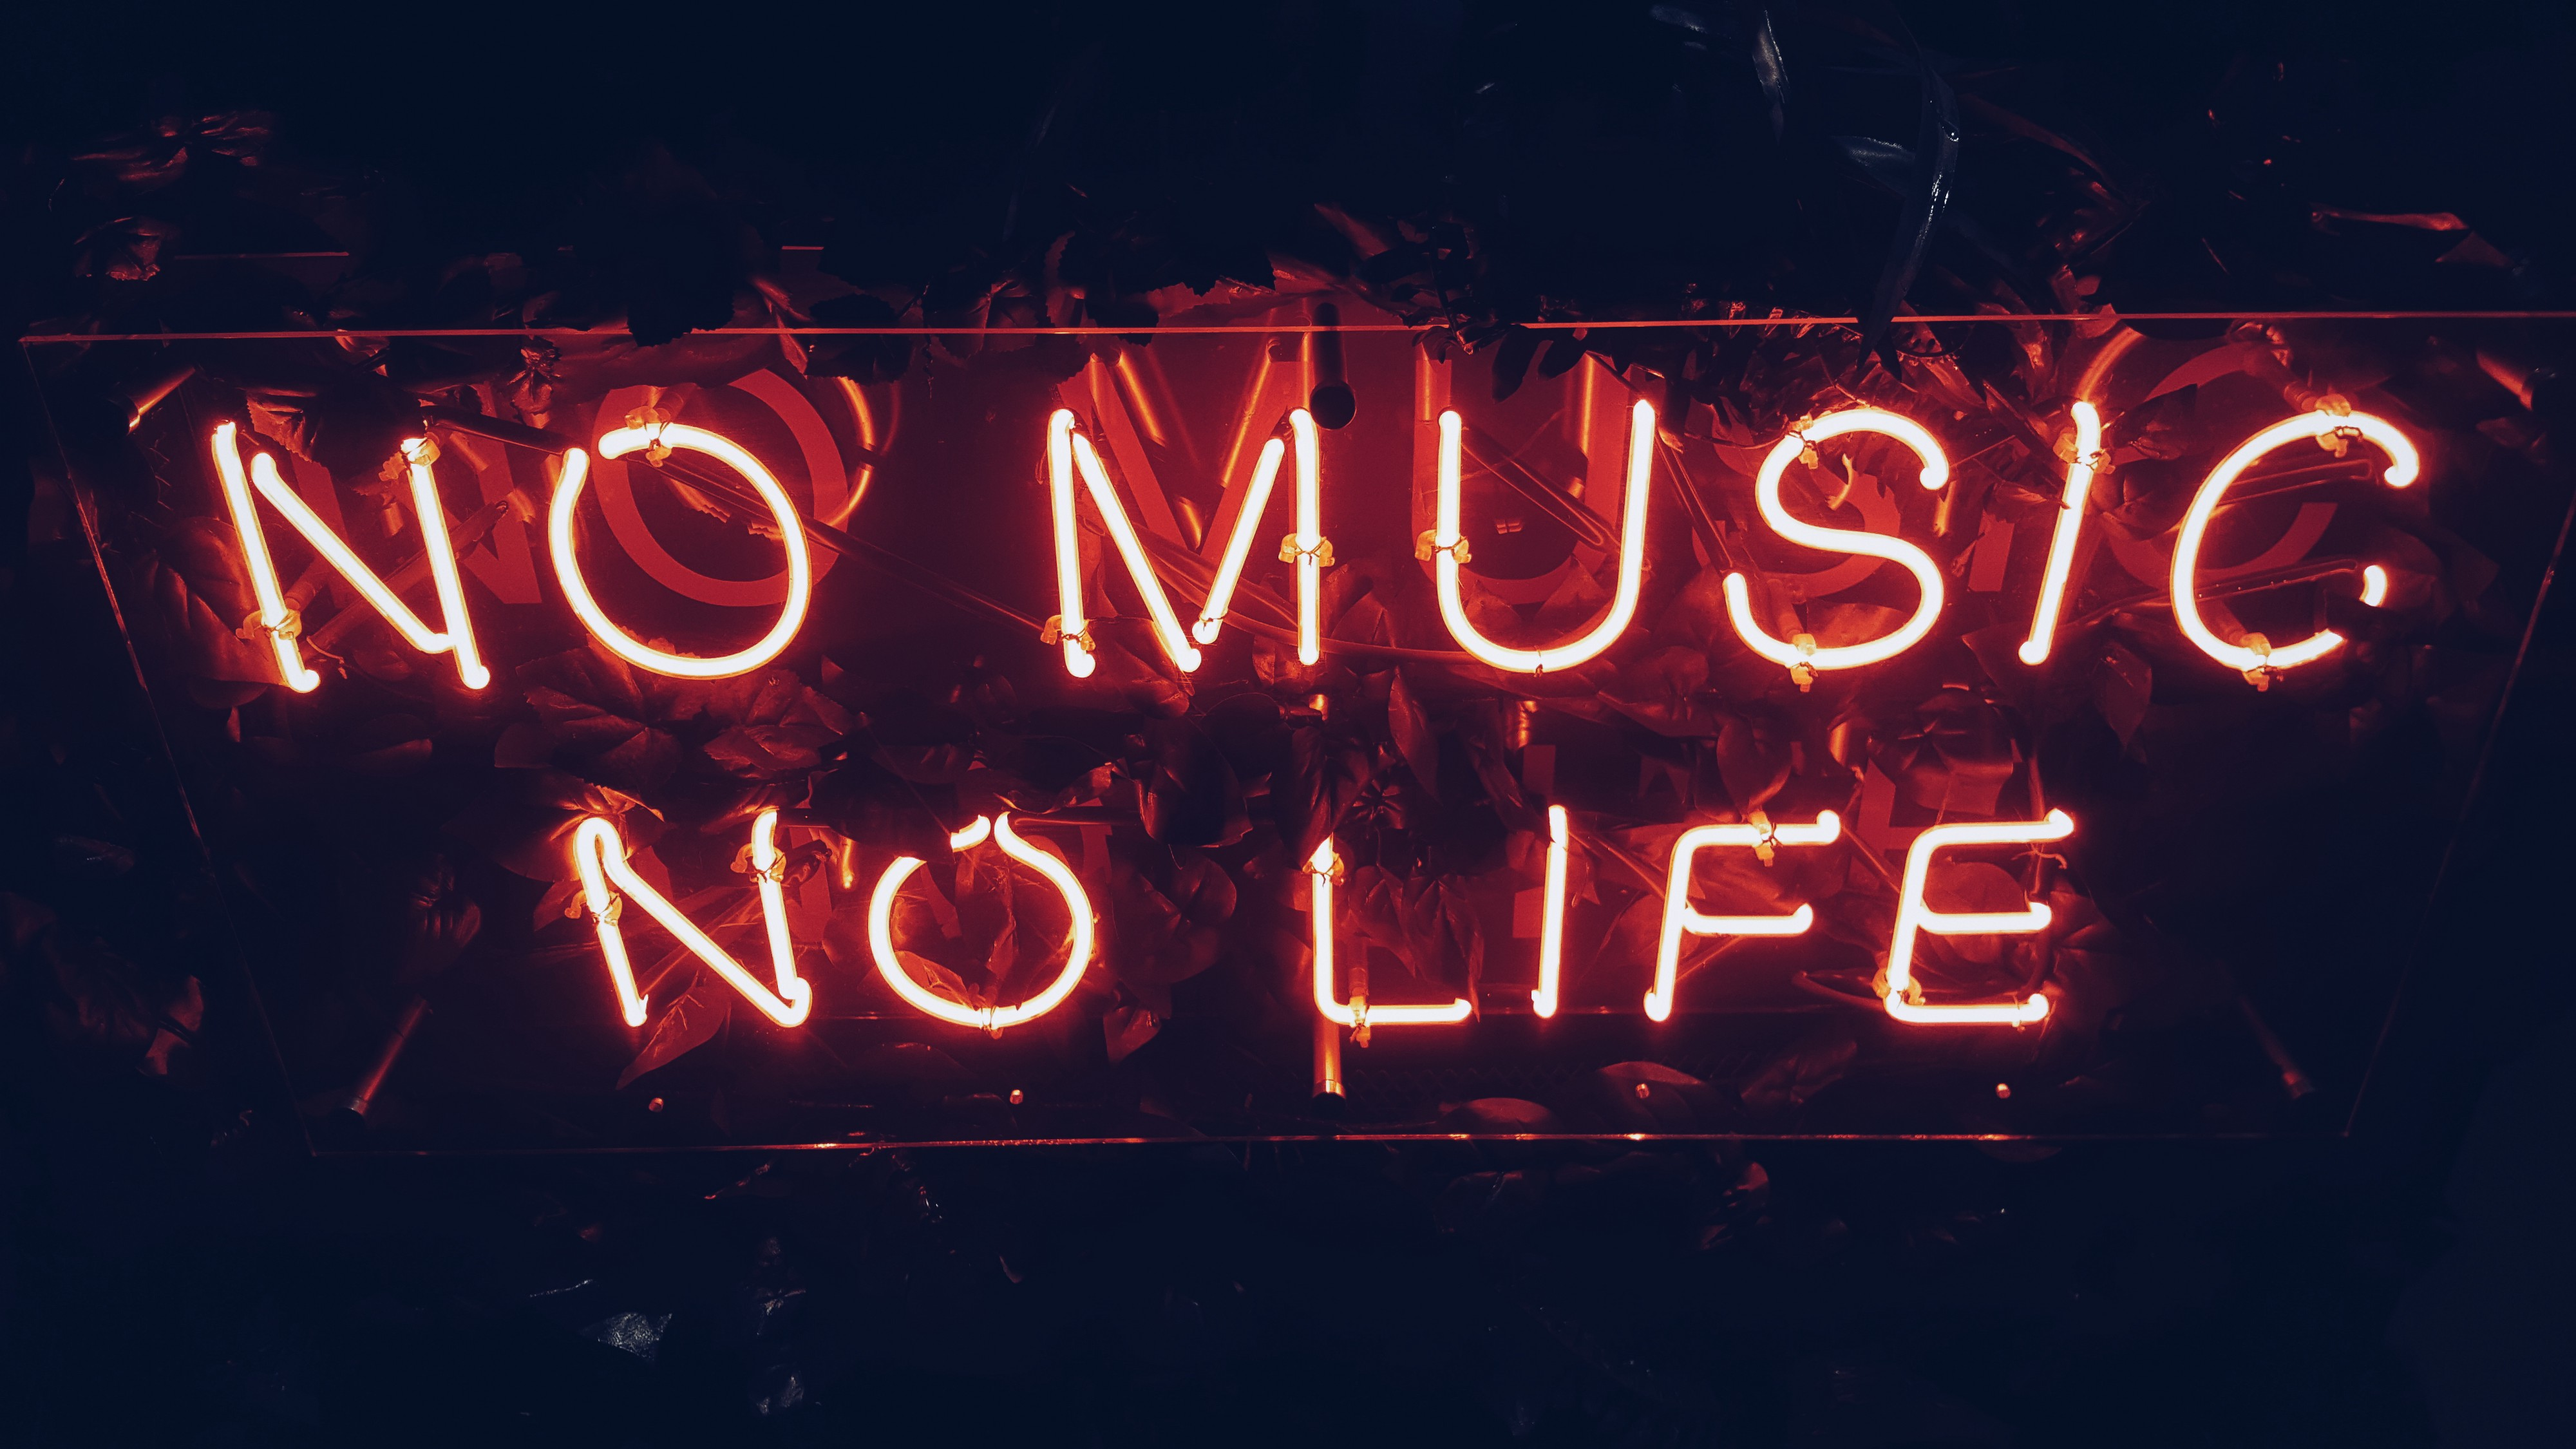 """Lit up in orange neon lights a sign reads """"NO MUSIC NO LIFE"""" in all caps."""